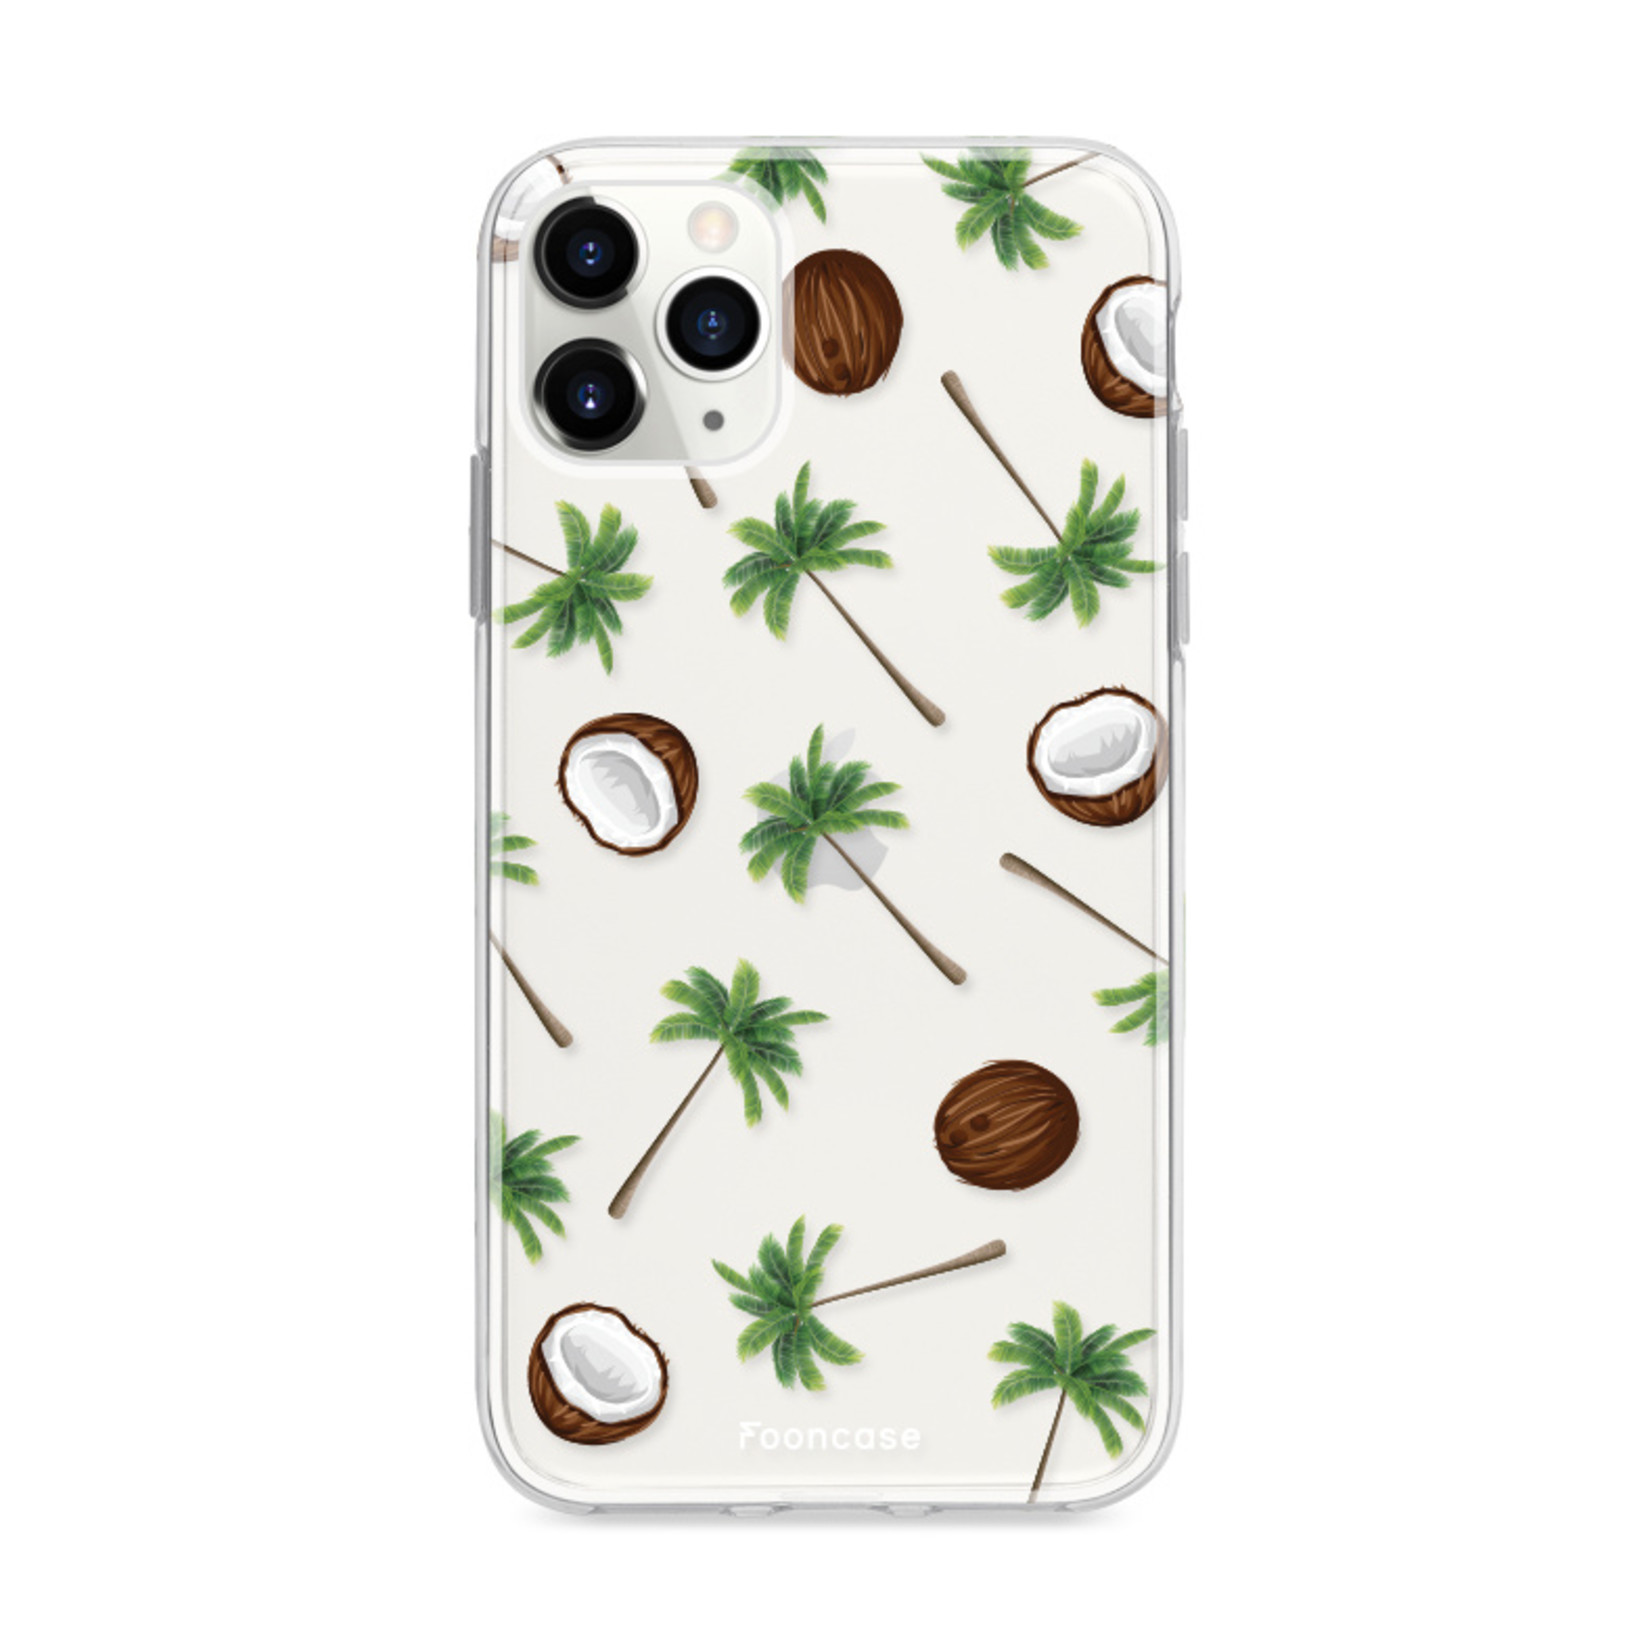 FOONCASE iPhone 12 Pro Max hoesje TPU Soft Case - Back Cover - Coco Paradise / Kokosnoot / Palmboom